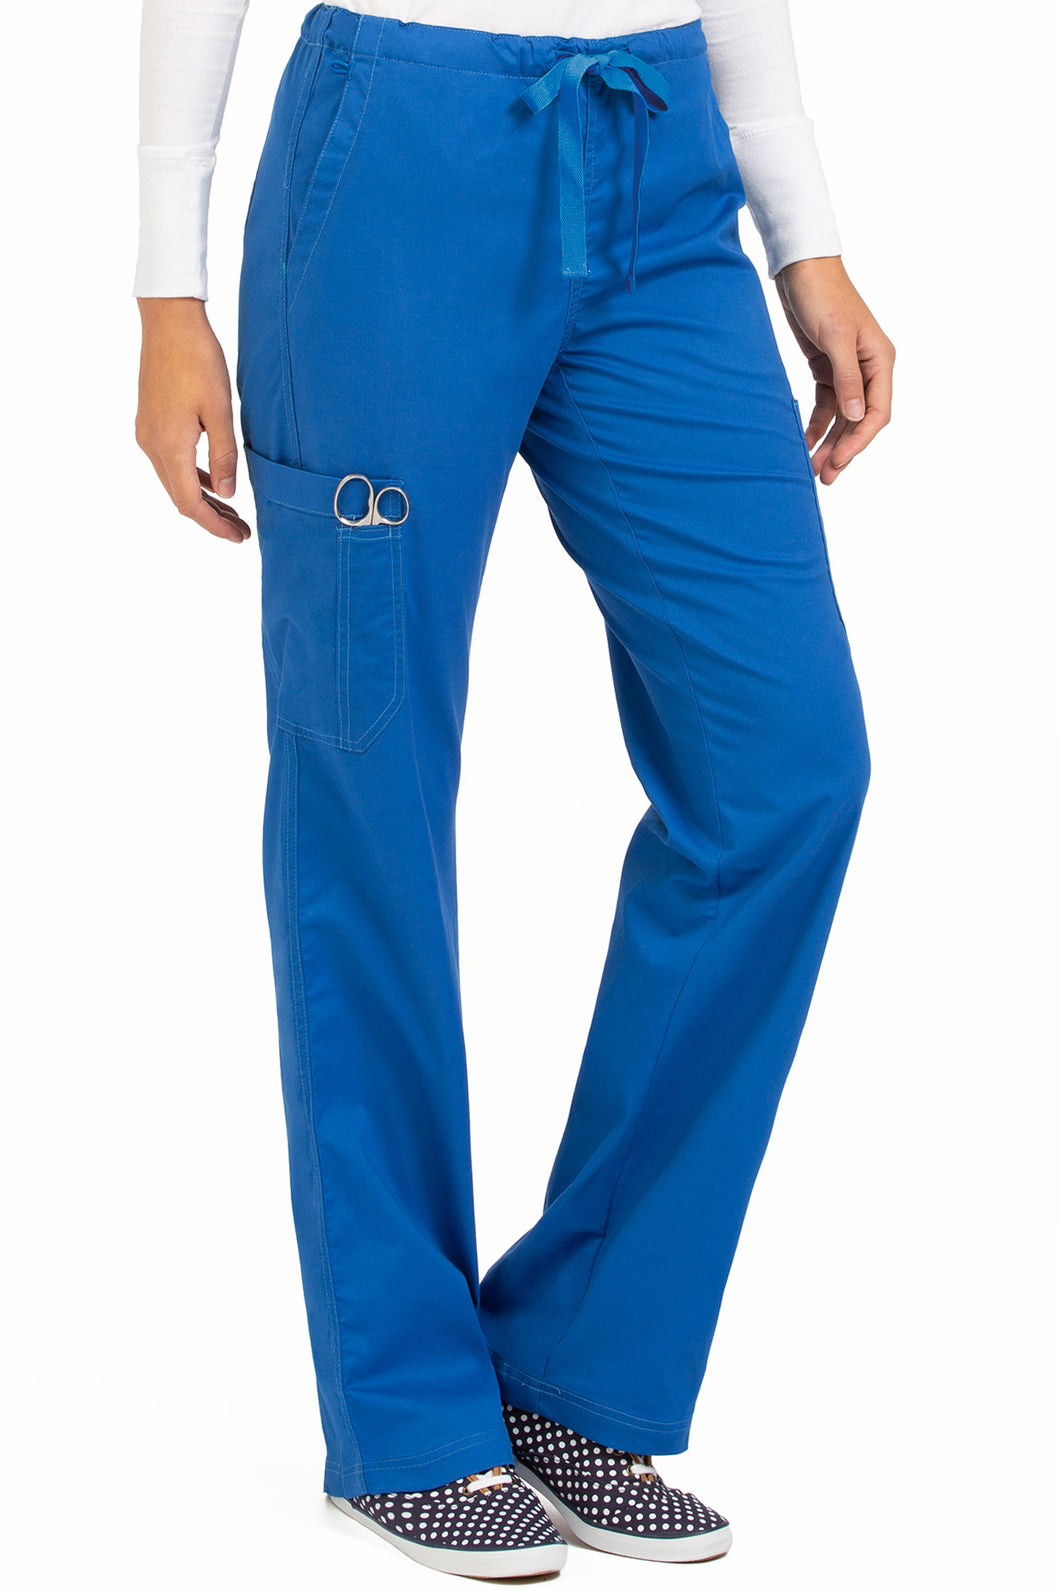 2 Cargo Royal Blue  Pocket Pant